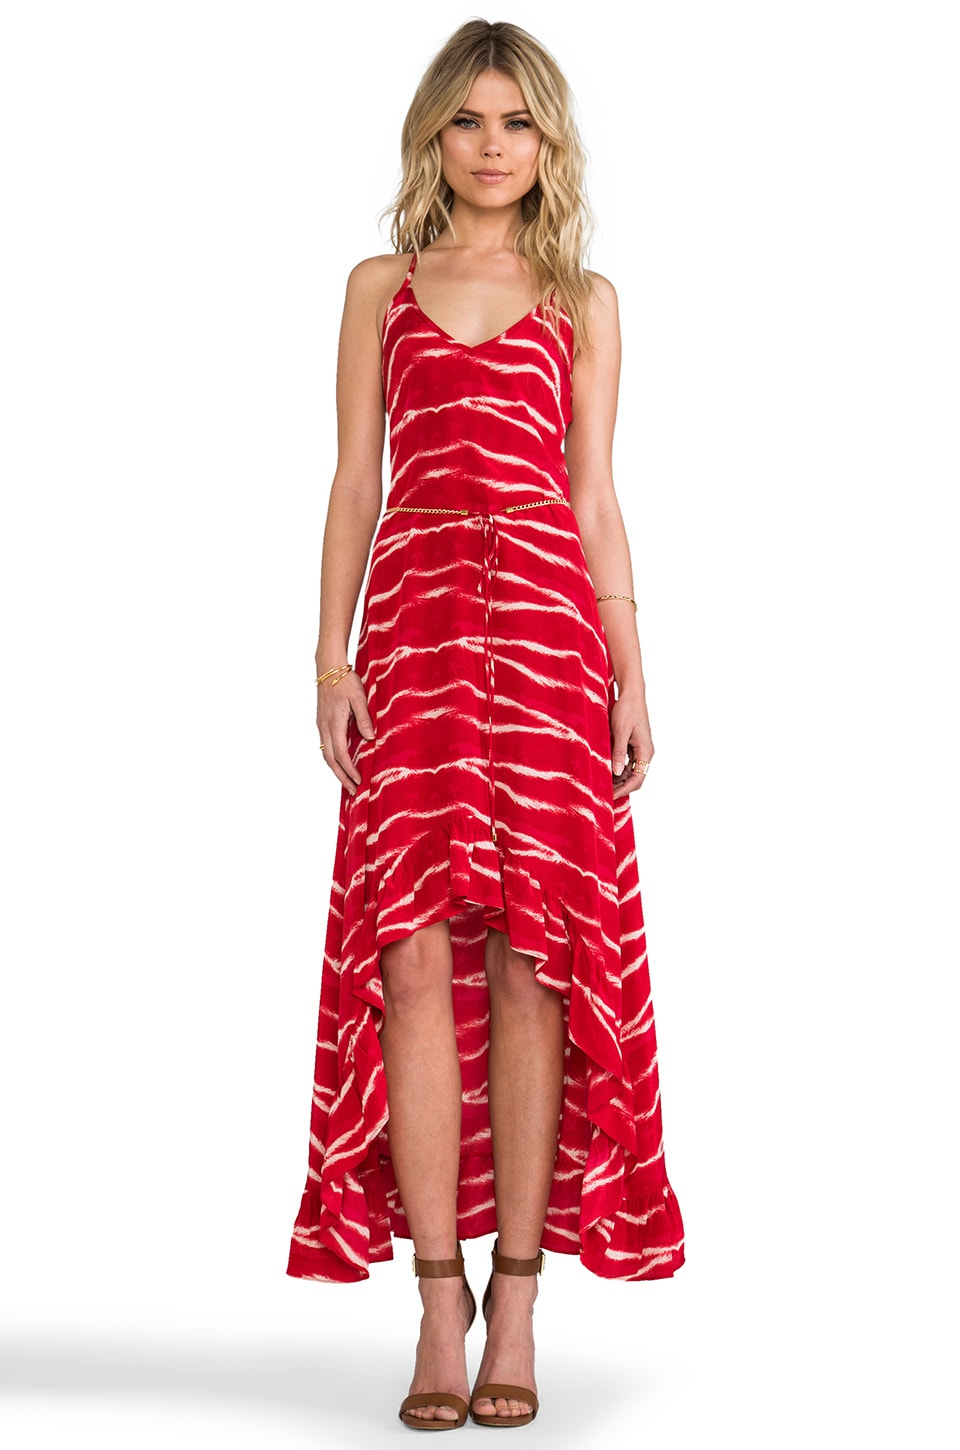 Karina Grimaldi Romantic Print Maxi in Ruby Tiger